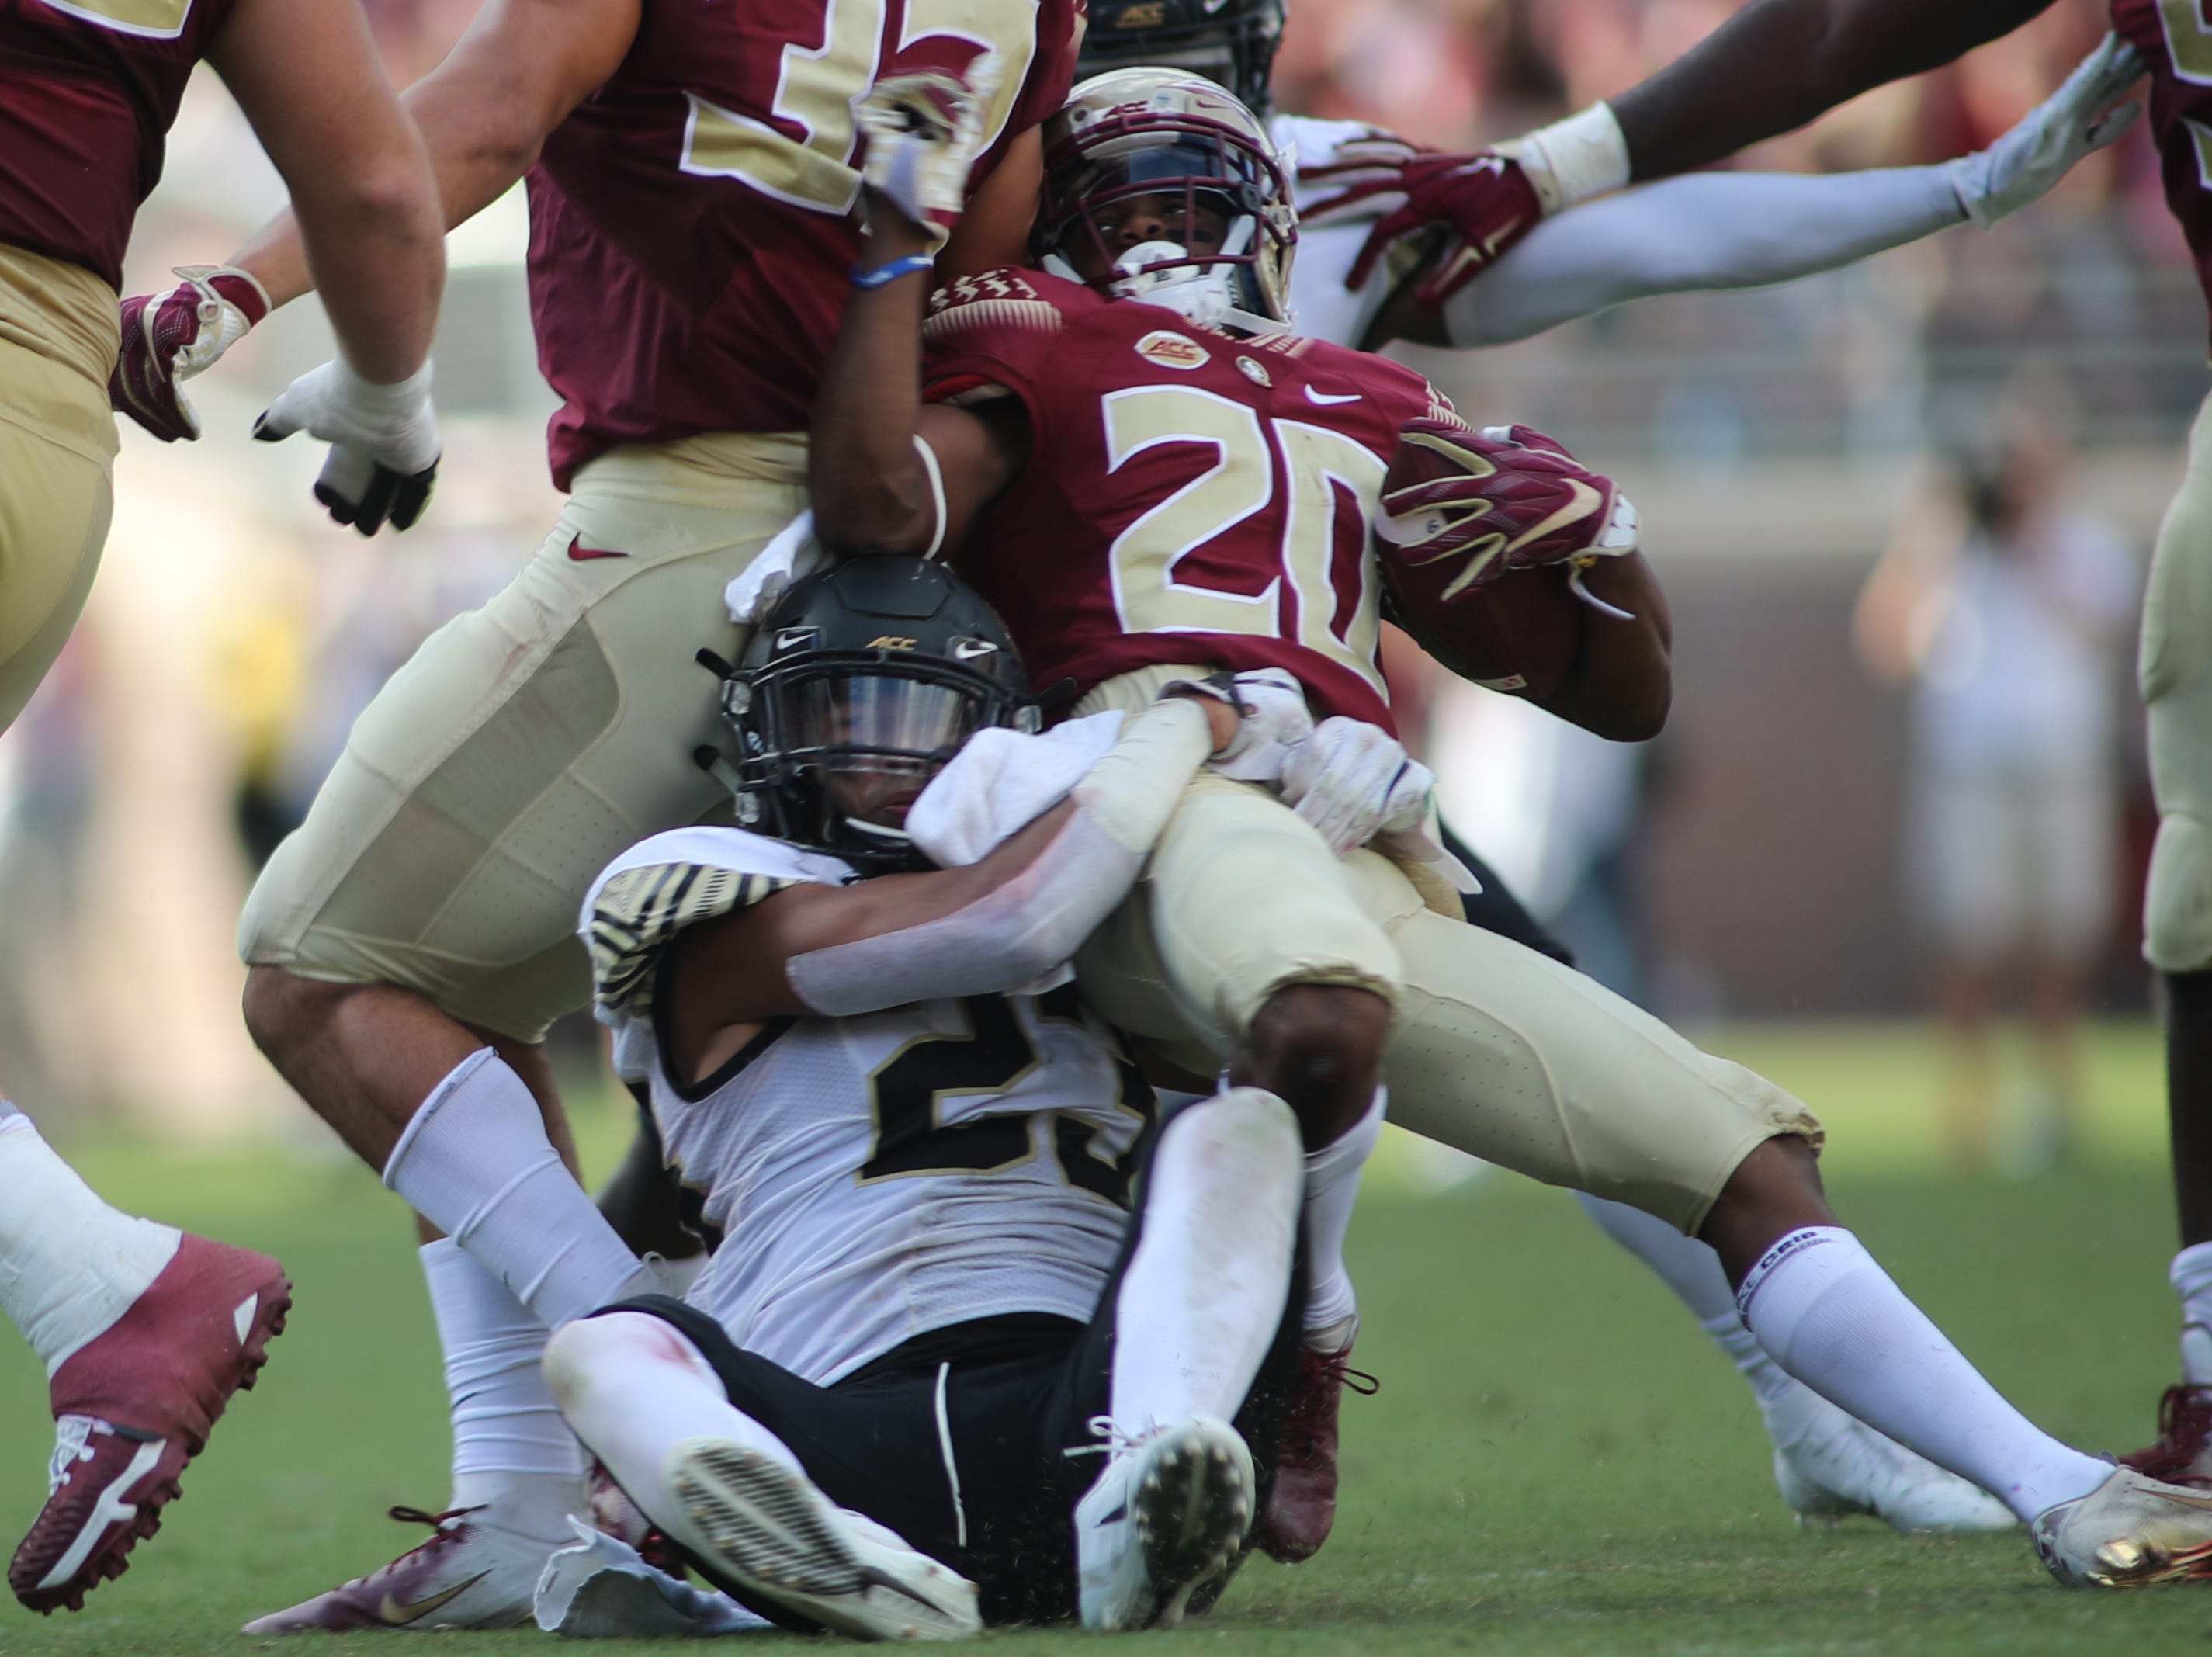 Wake Forest Demon Deacons linebacker Justin Strnad (23) brings down Florida State Seminoles wide receiver Keyshawn Helton (20) during FSU's homecoming game against Wake Forest at Doak S. Campbell Stadium Saturday, Oct. 20, 2018.